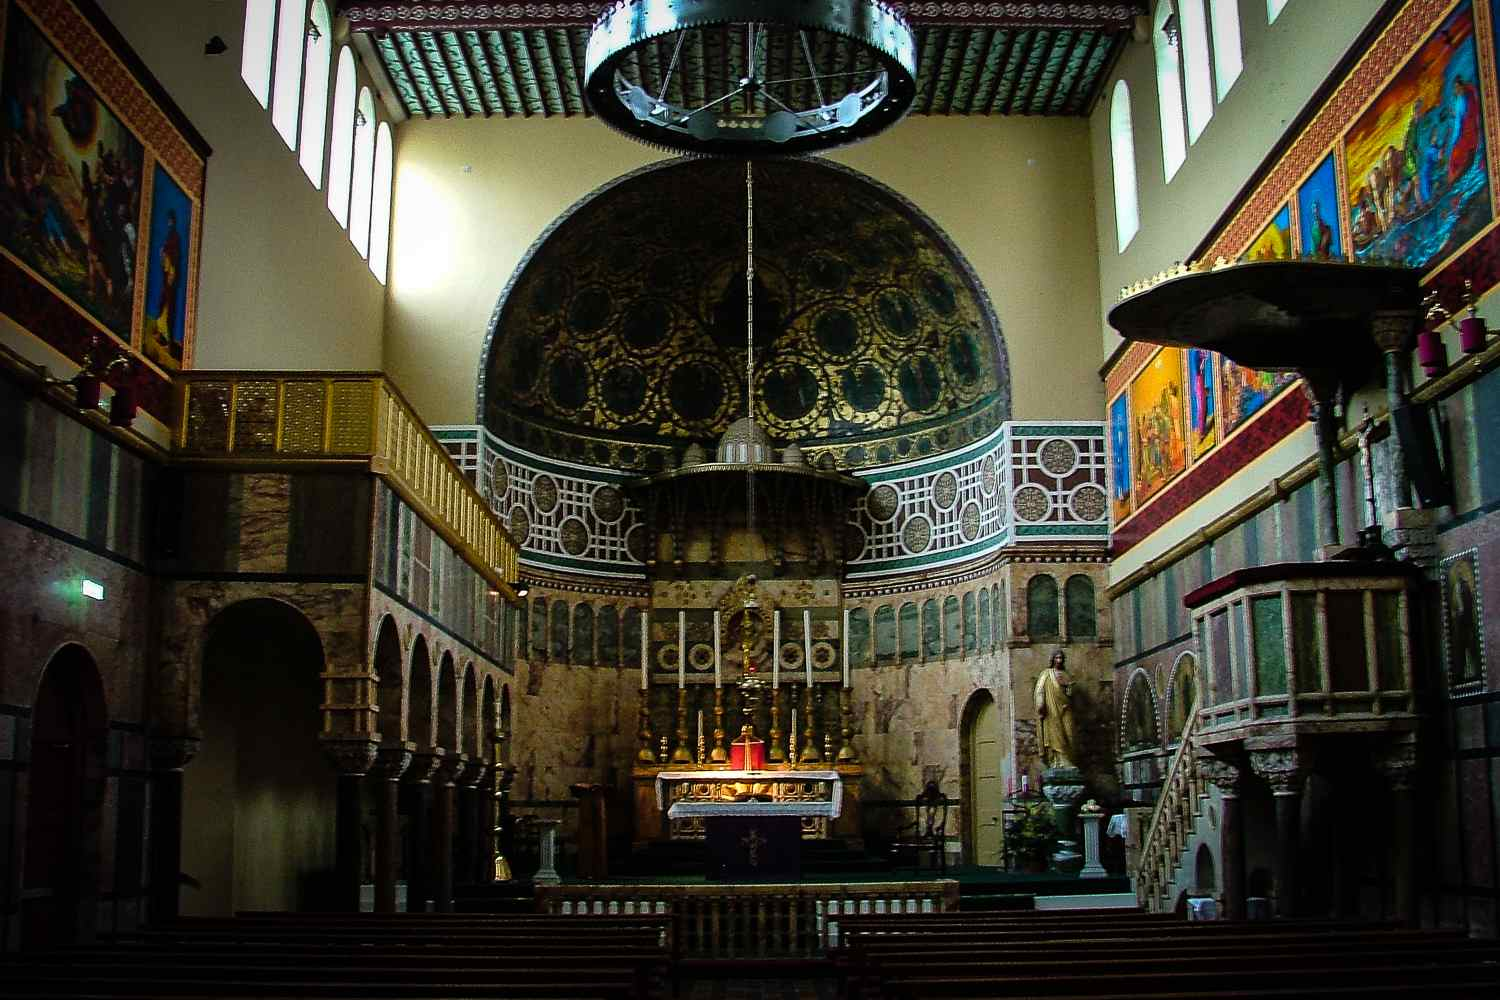 The colorful interior of University Church